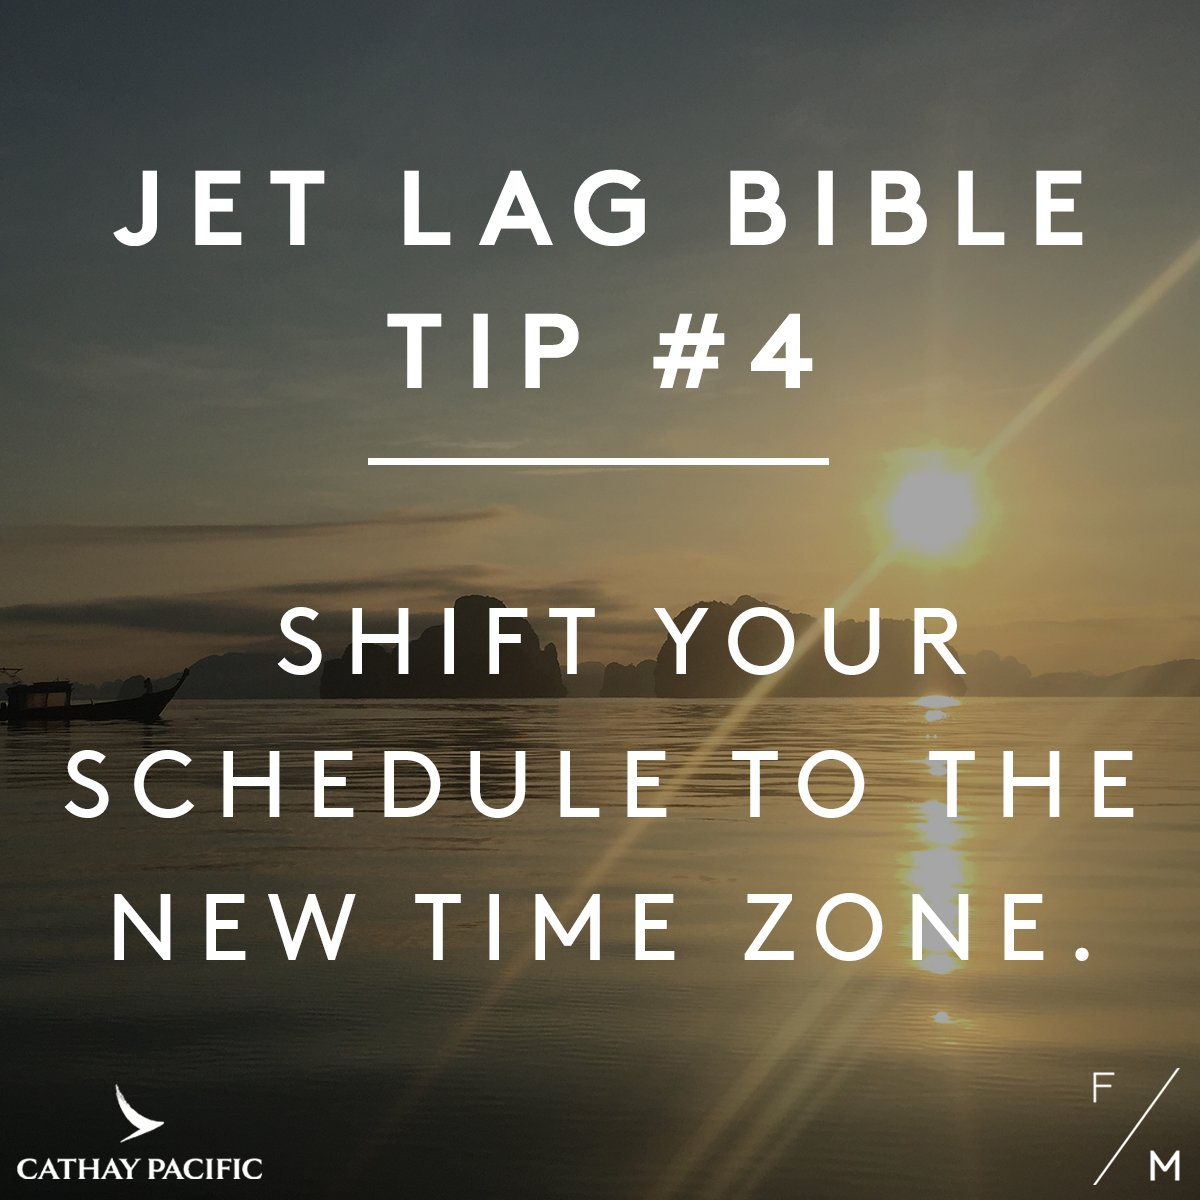 Jetlag bible tip 4: Shift your schedule to the new time zone